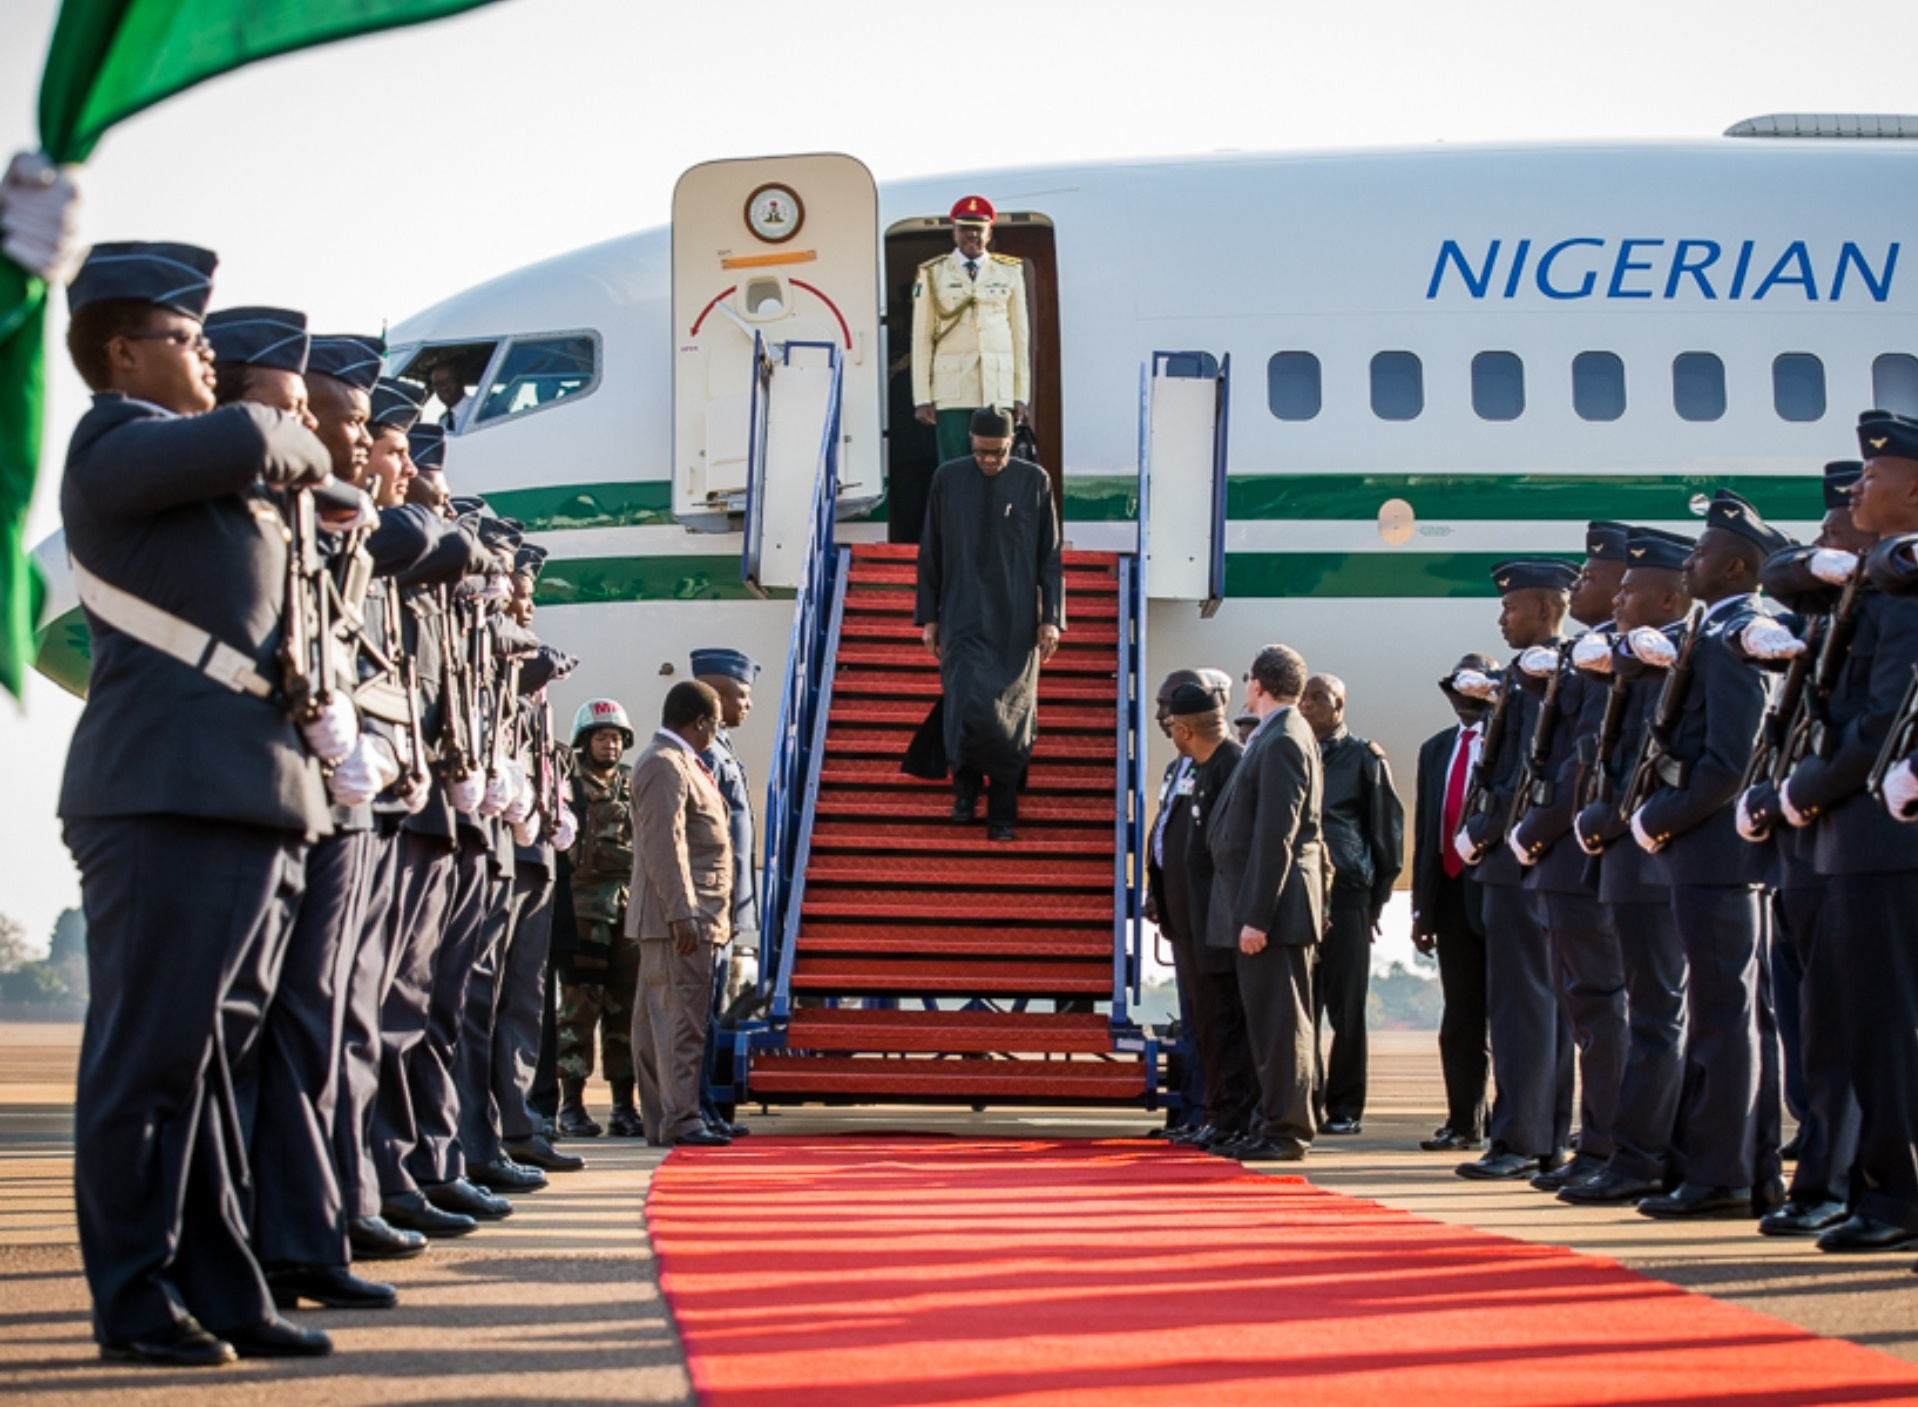 [PHOTO NEWS] President Buhari arrives South Africa for AU summit